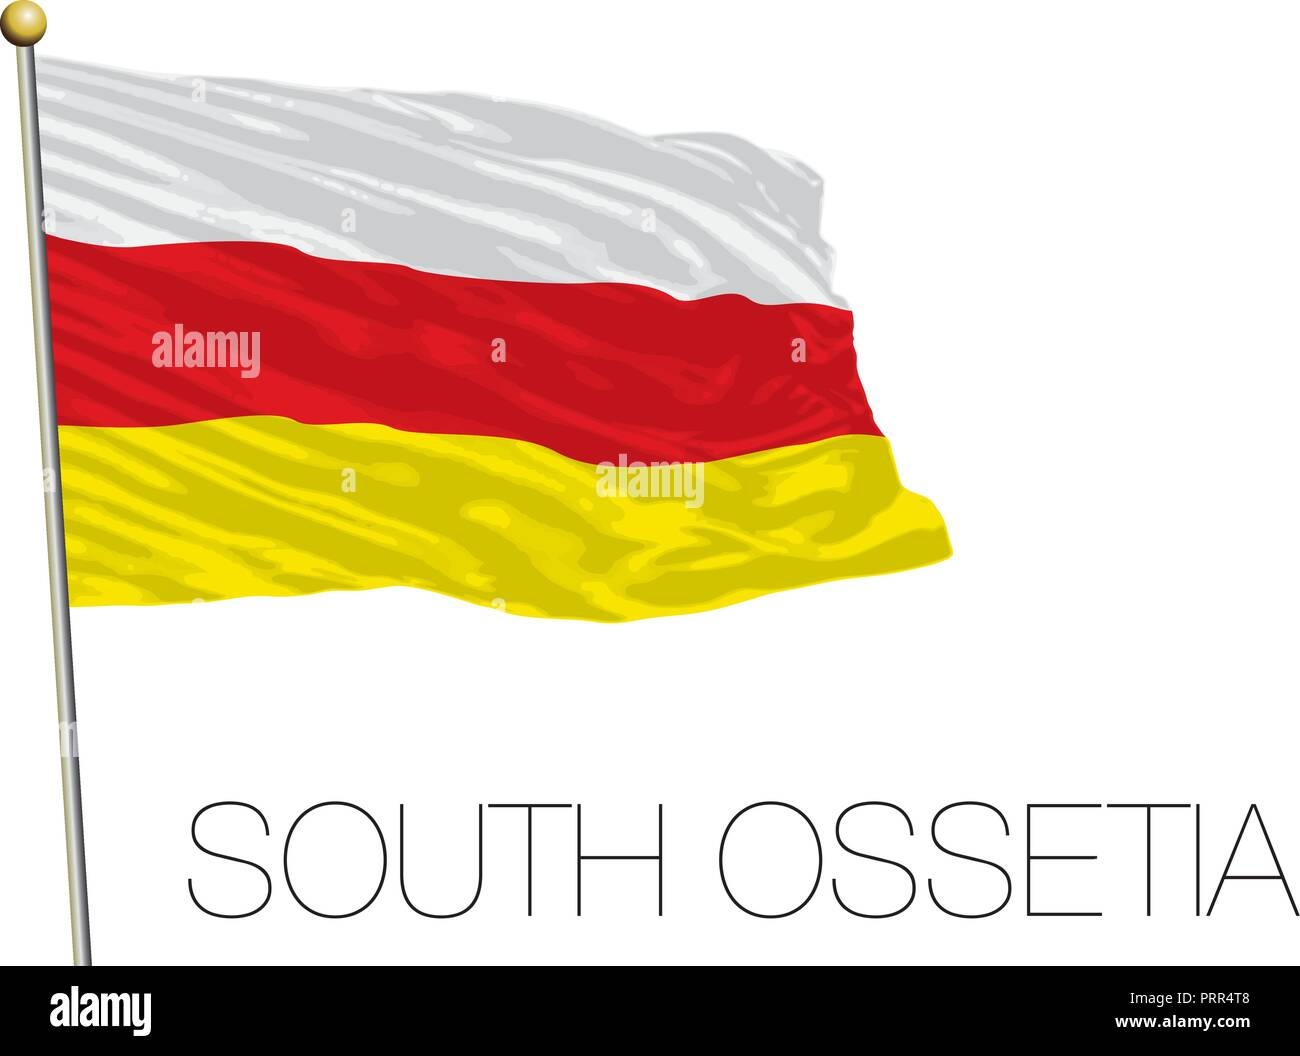 South Ossetia official flag, vector illustration - Stock Image